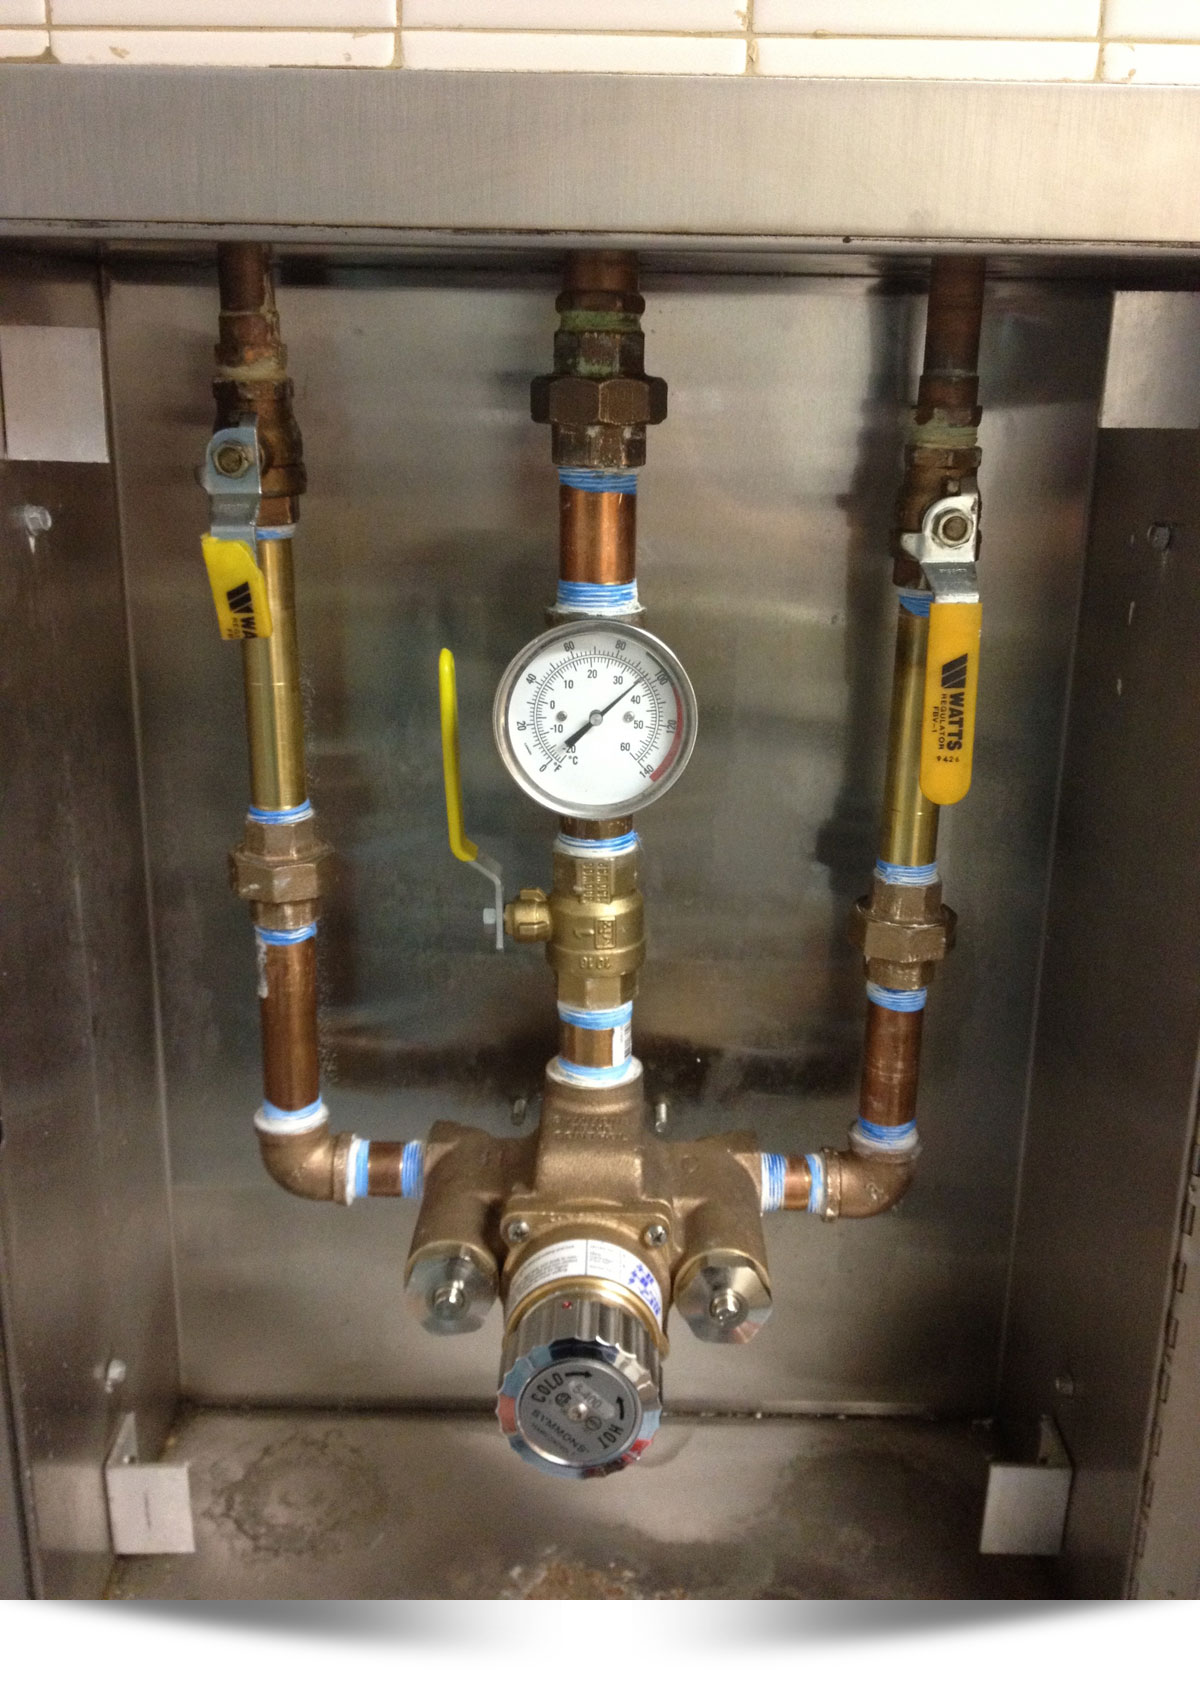 Thermostatic Valve Installation by Commercial Plumber from Eastlake Plumbing